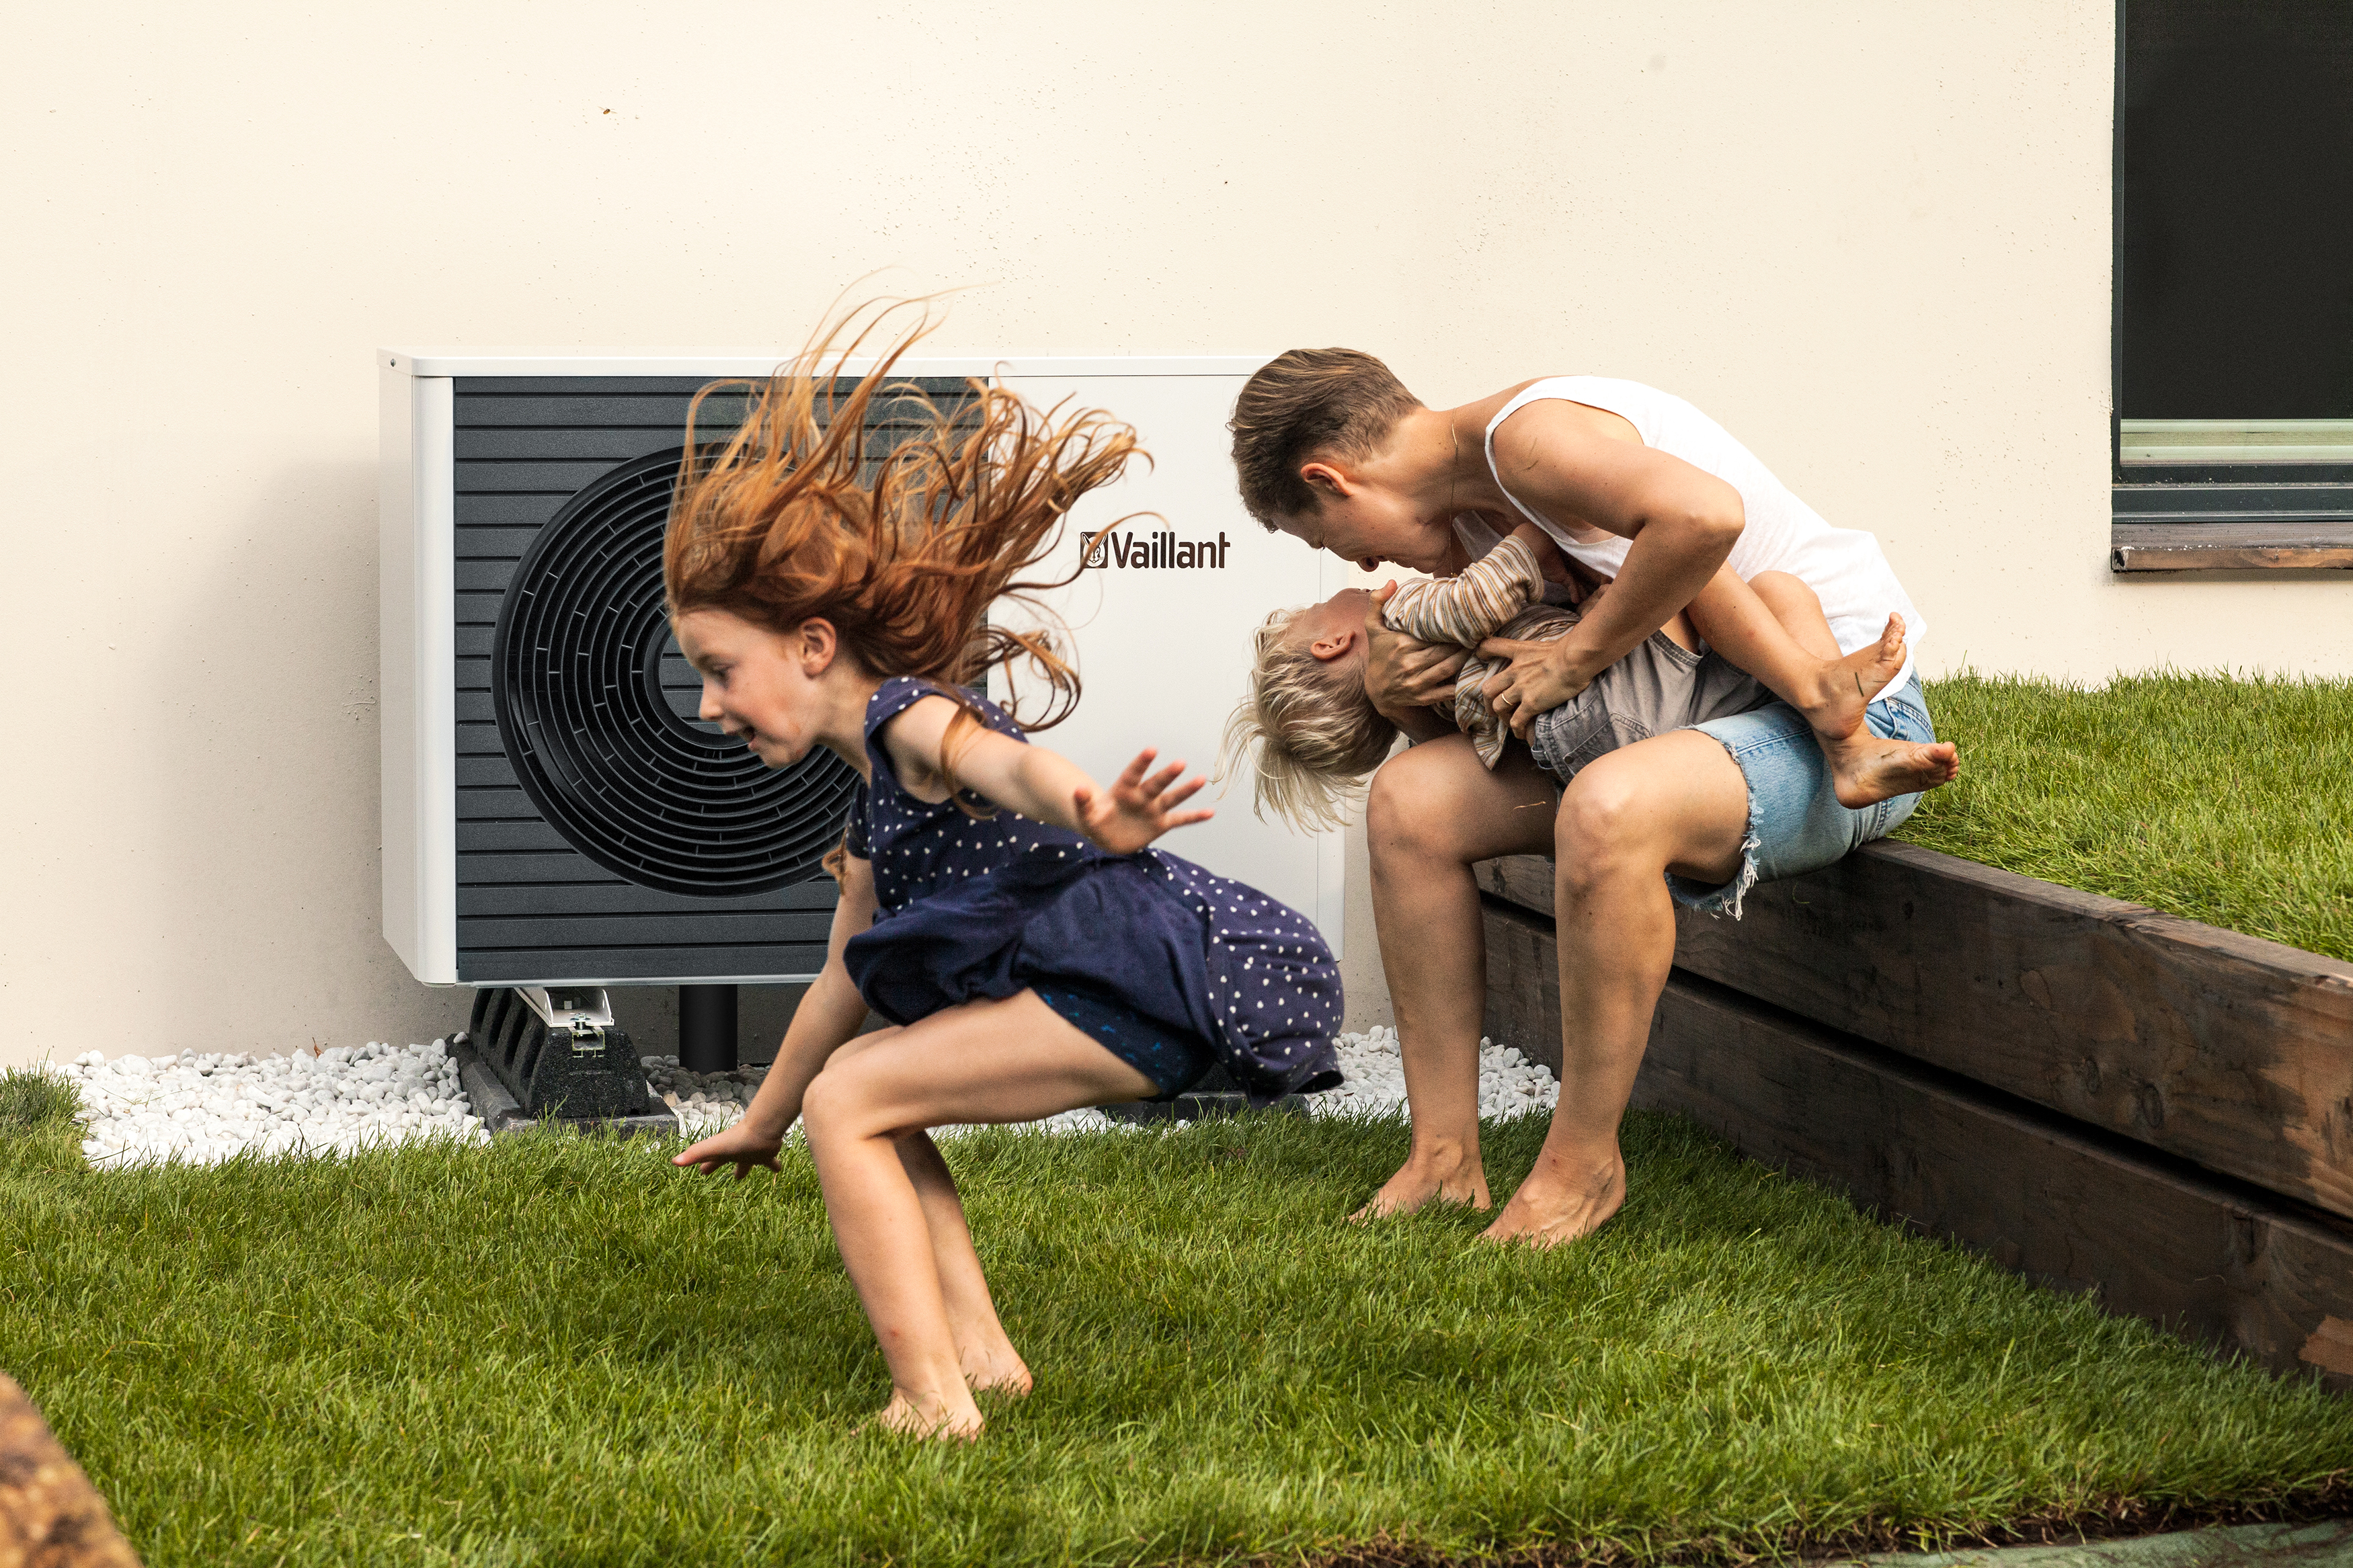 Image: The Quiet Mark Certified Vaillant aroTHERM Plus Air Source Heat Pump